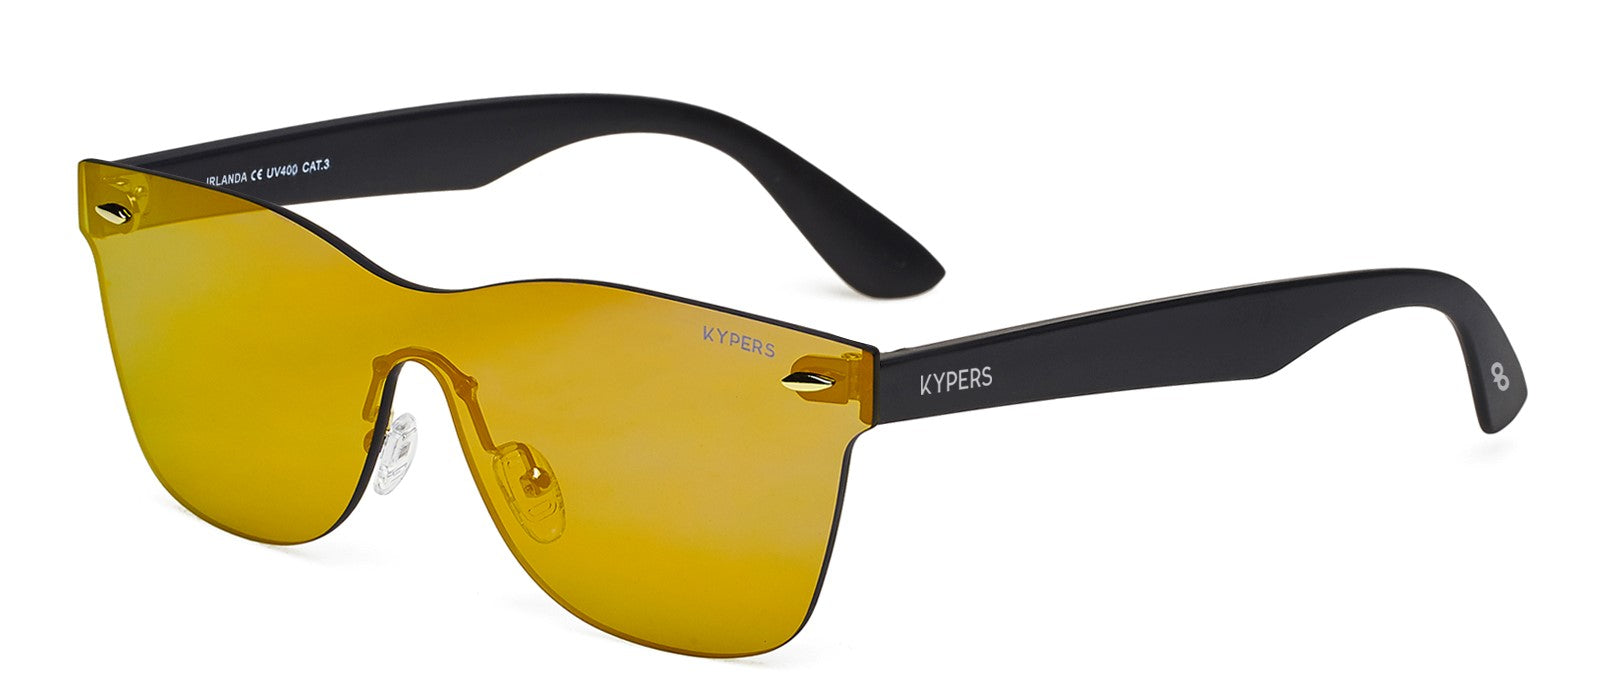 KYPERS IRLANDA Polarized Lifestyle Sunglasses - KRNglasses.com